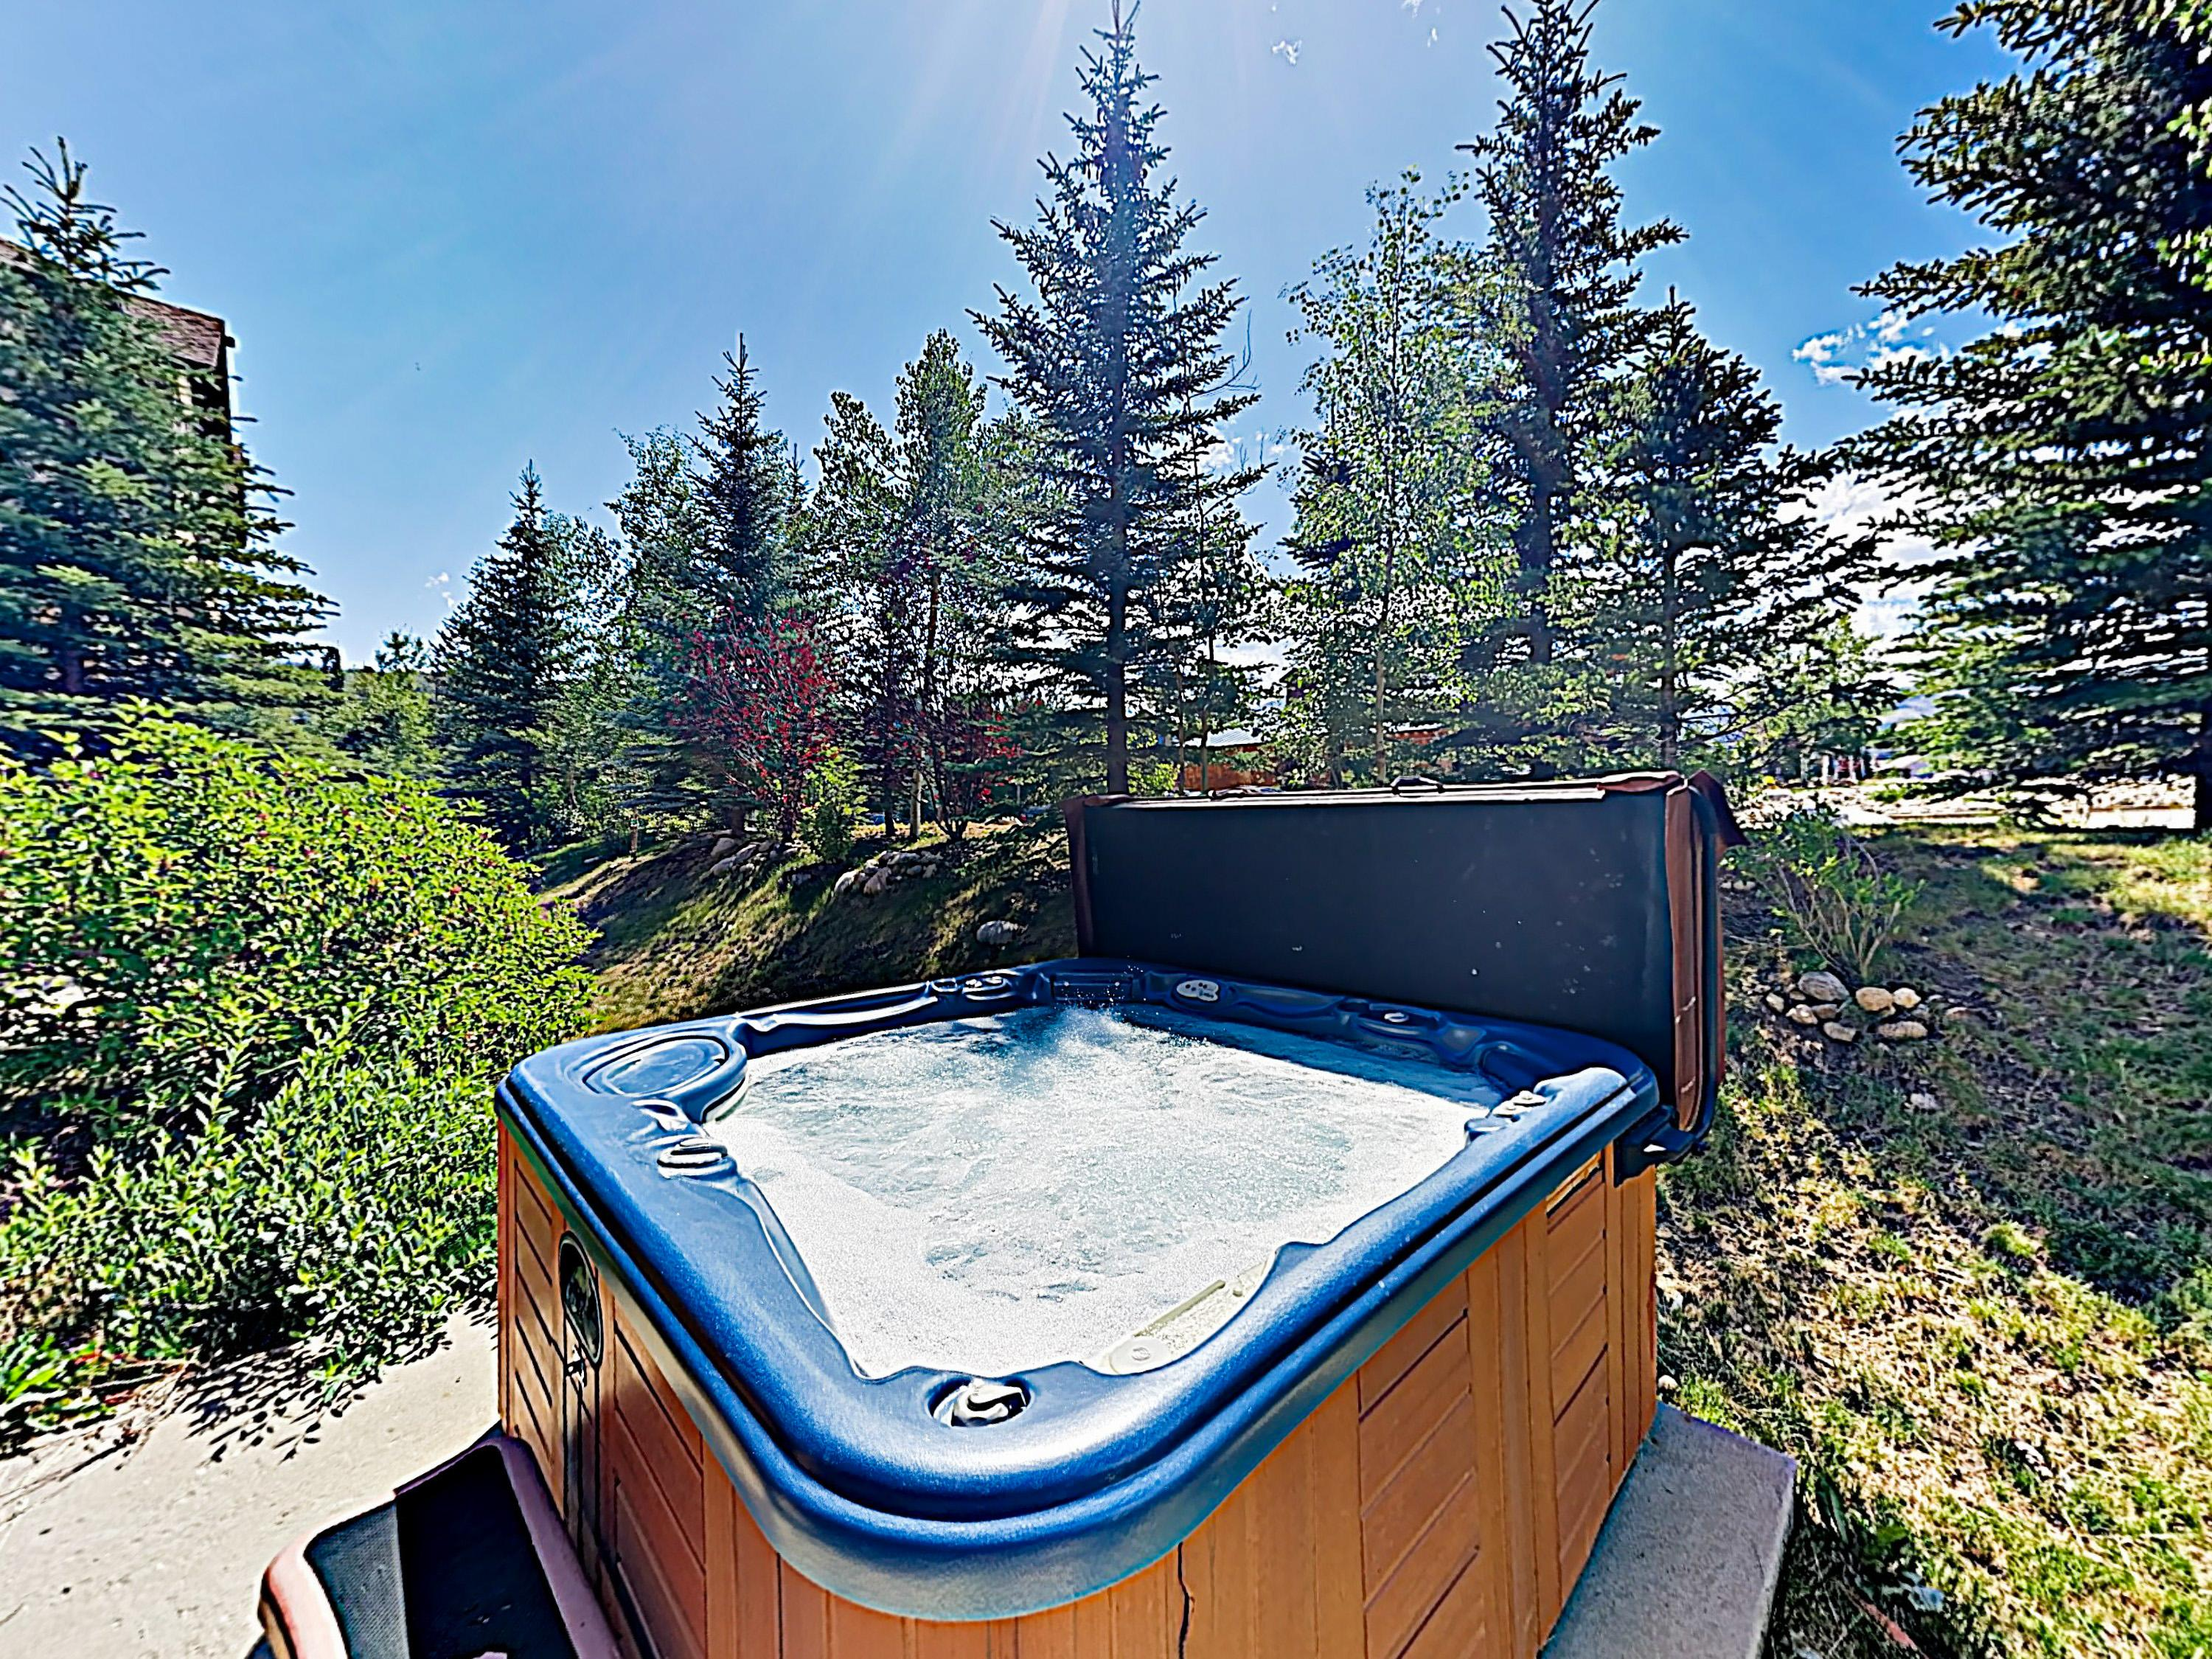 After days on the slopes, relax in the private hot tub.